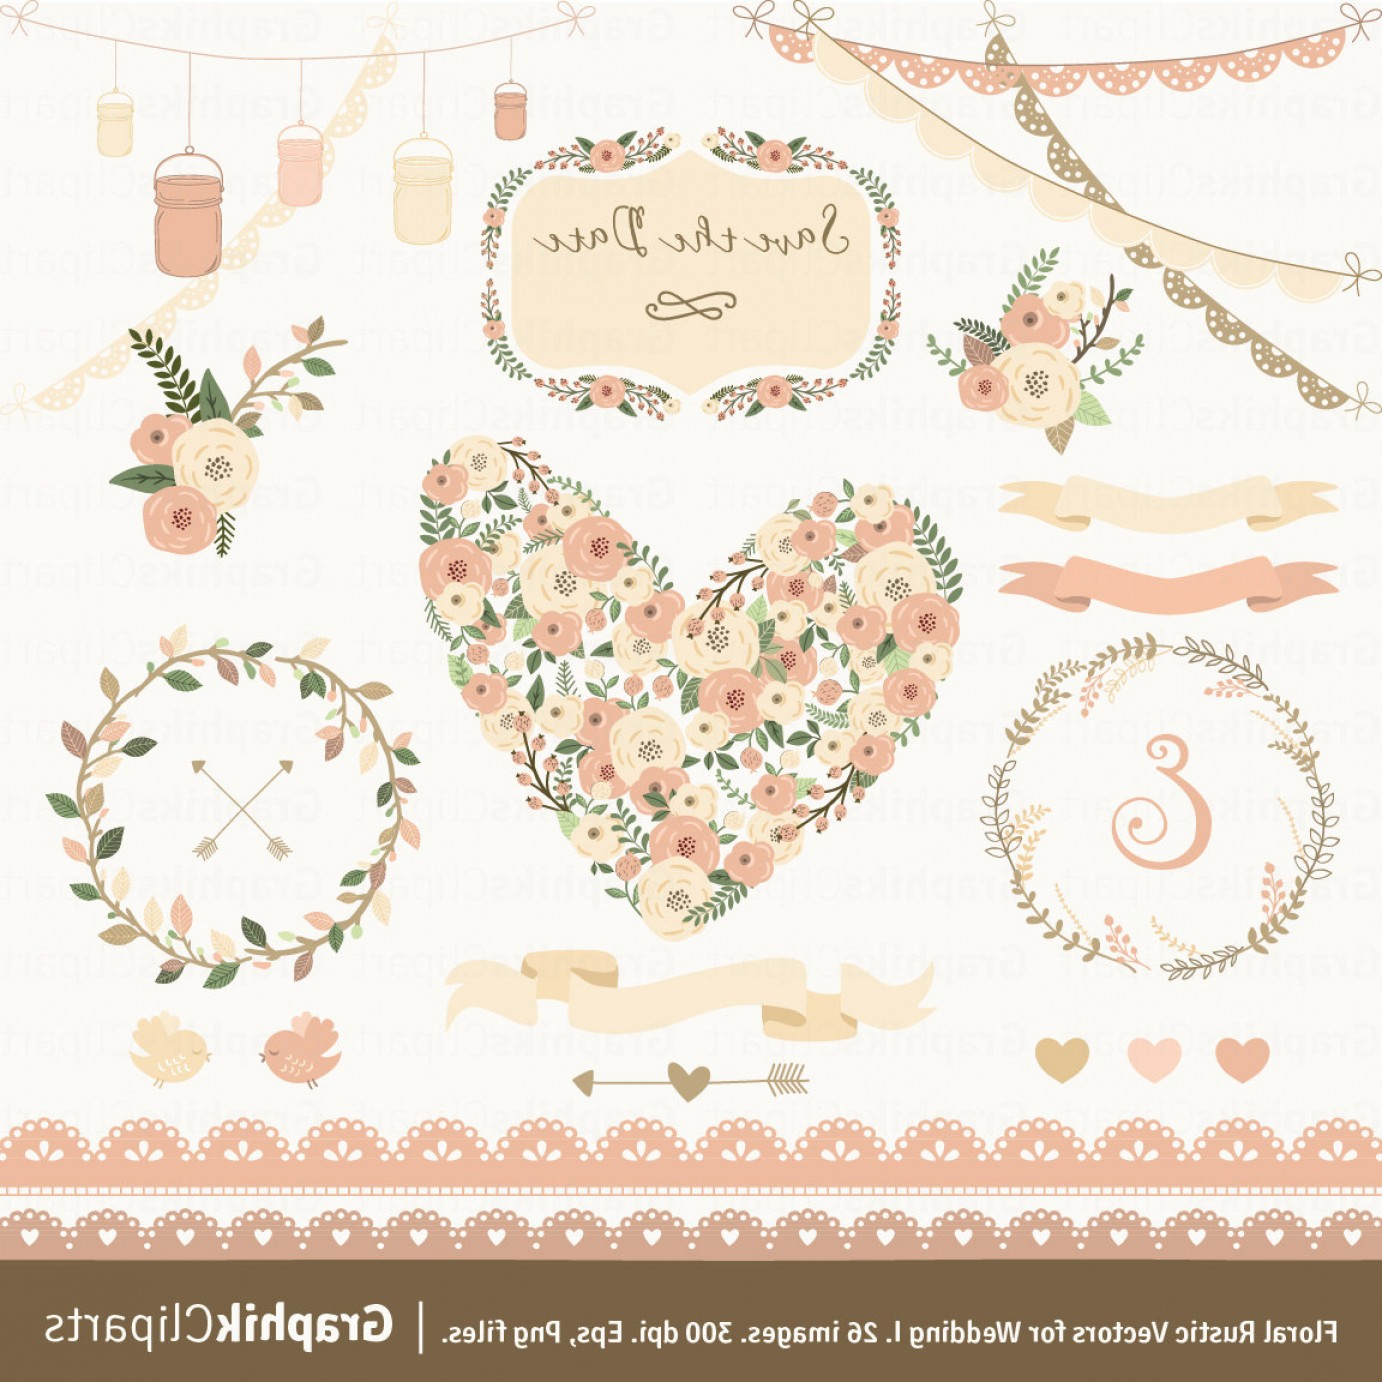 1382x1382 Floral Rustic Vectors For Wedding Rongholland